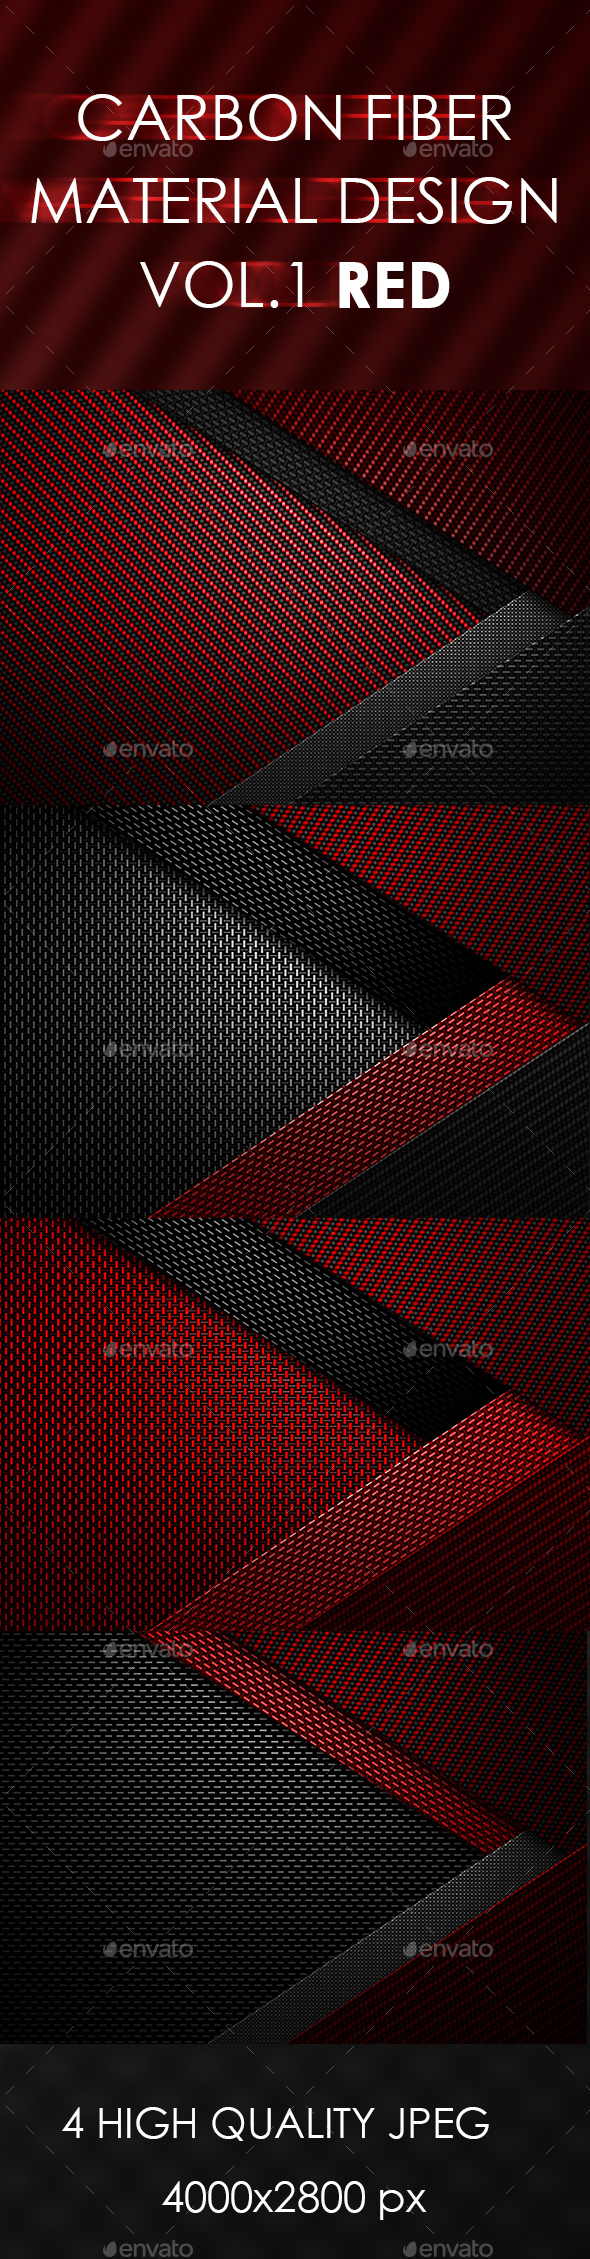 Red Carbon Fiber Clipart Backgrounds - Urban Backgrounds